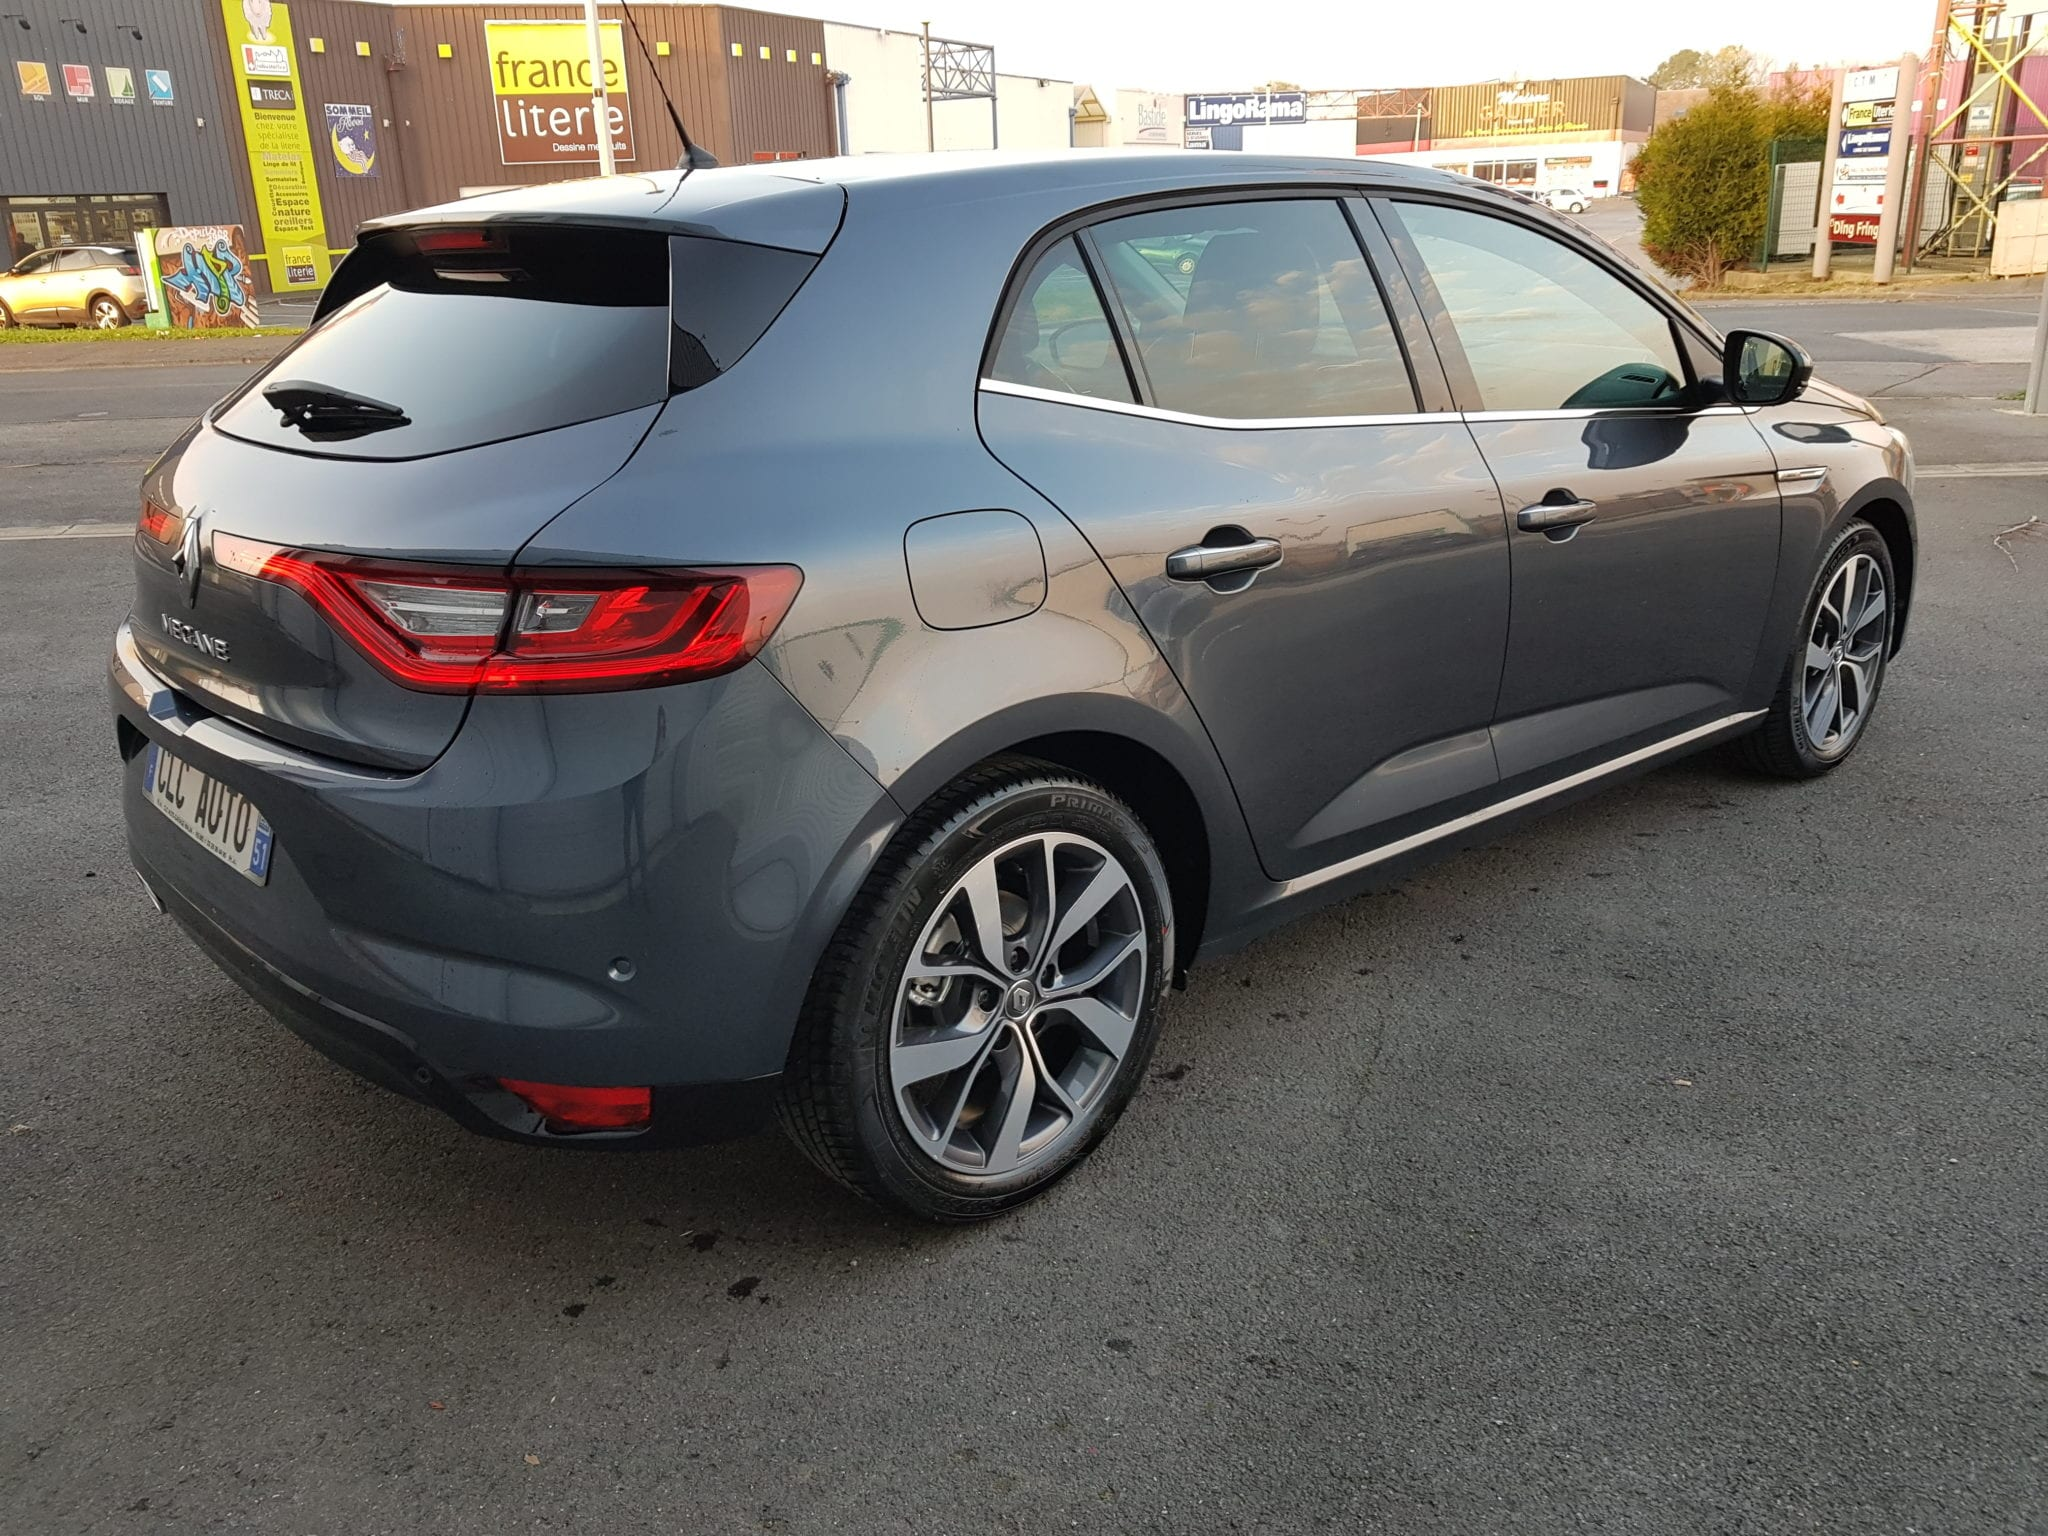 Renault MEGANE 4 BOSE EDITION ENERGY 1.6 DCI 130 - Image 2